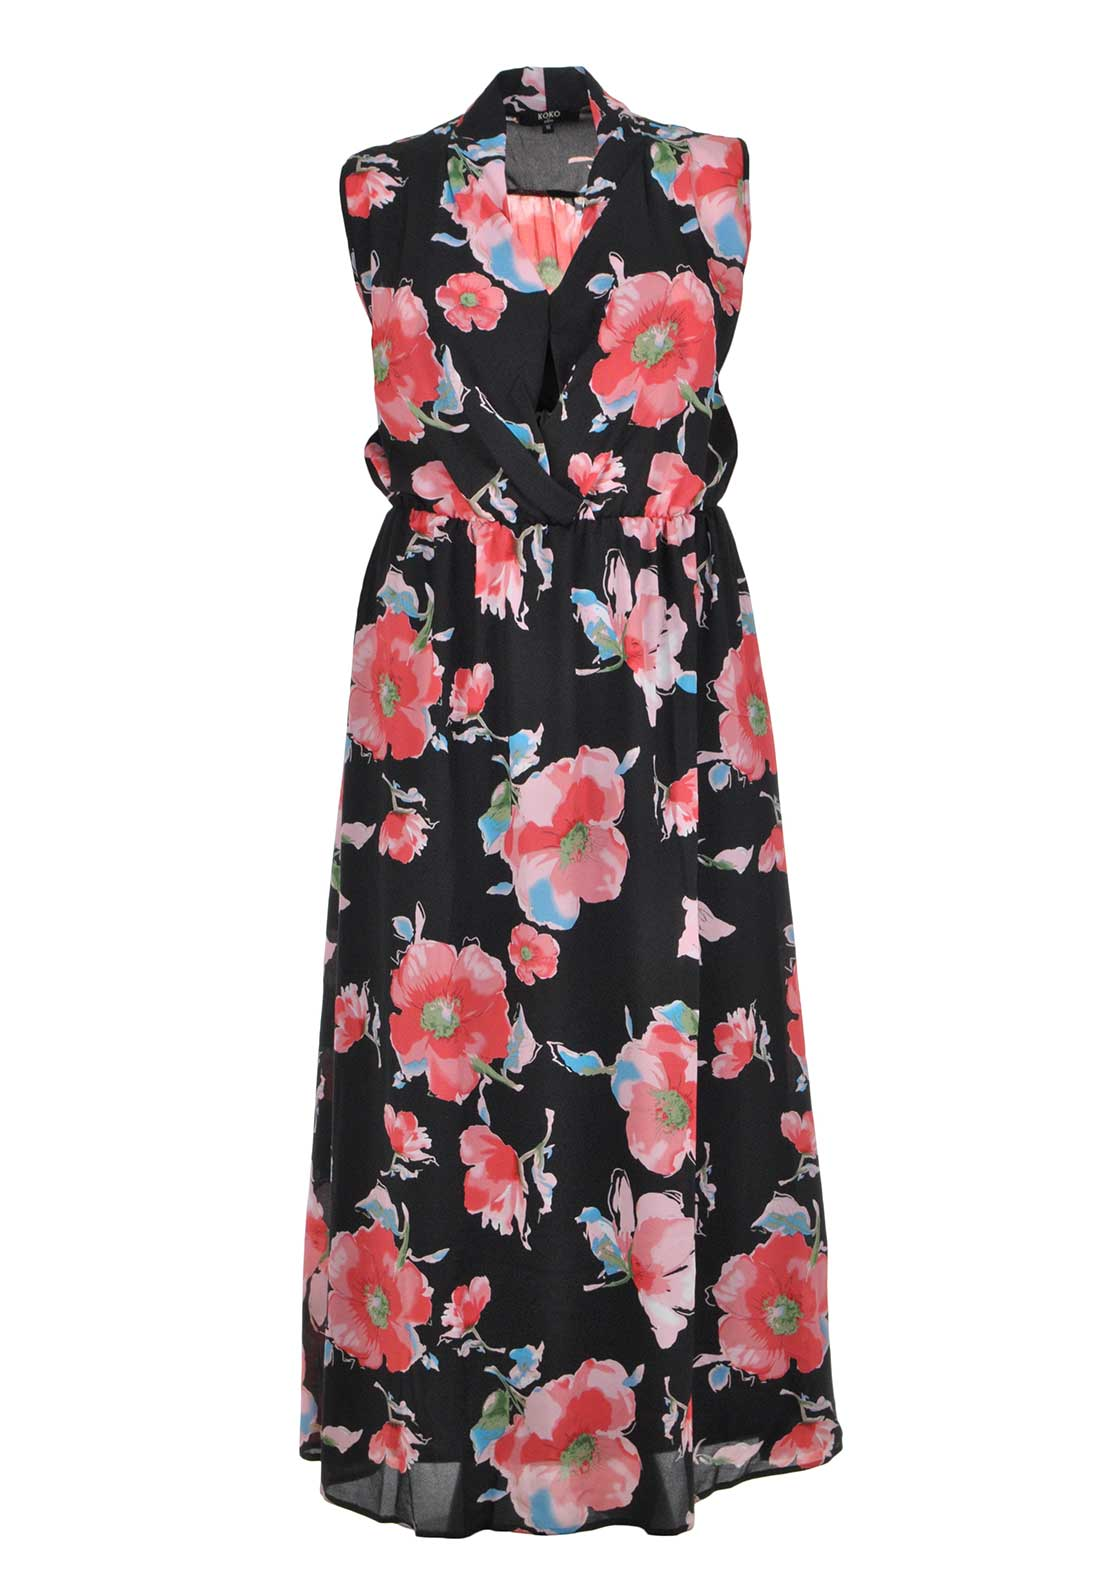 Lovedrobe Floral Print Maxi Dress, Black and Red